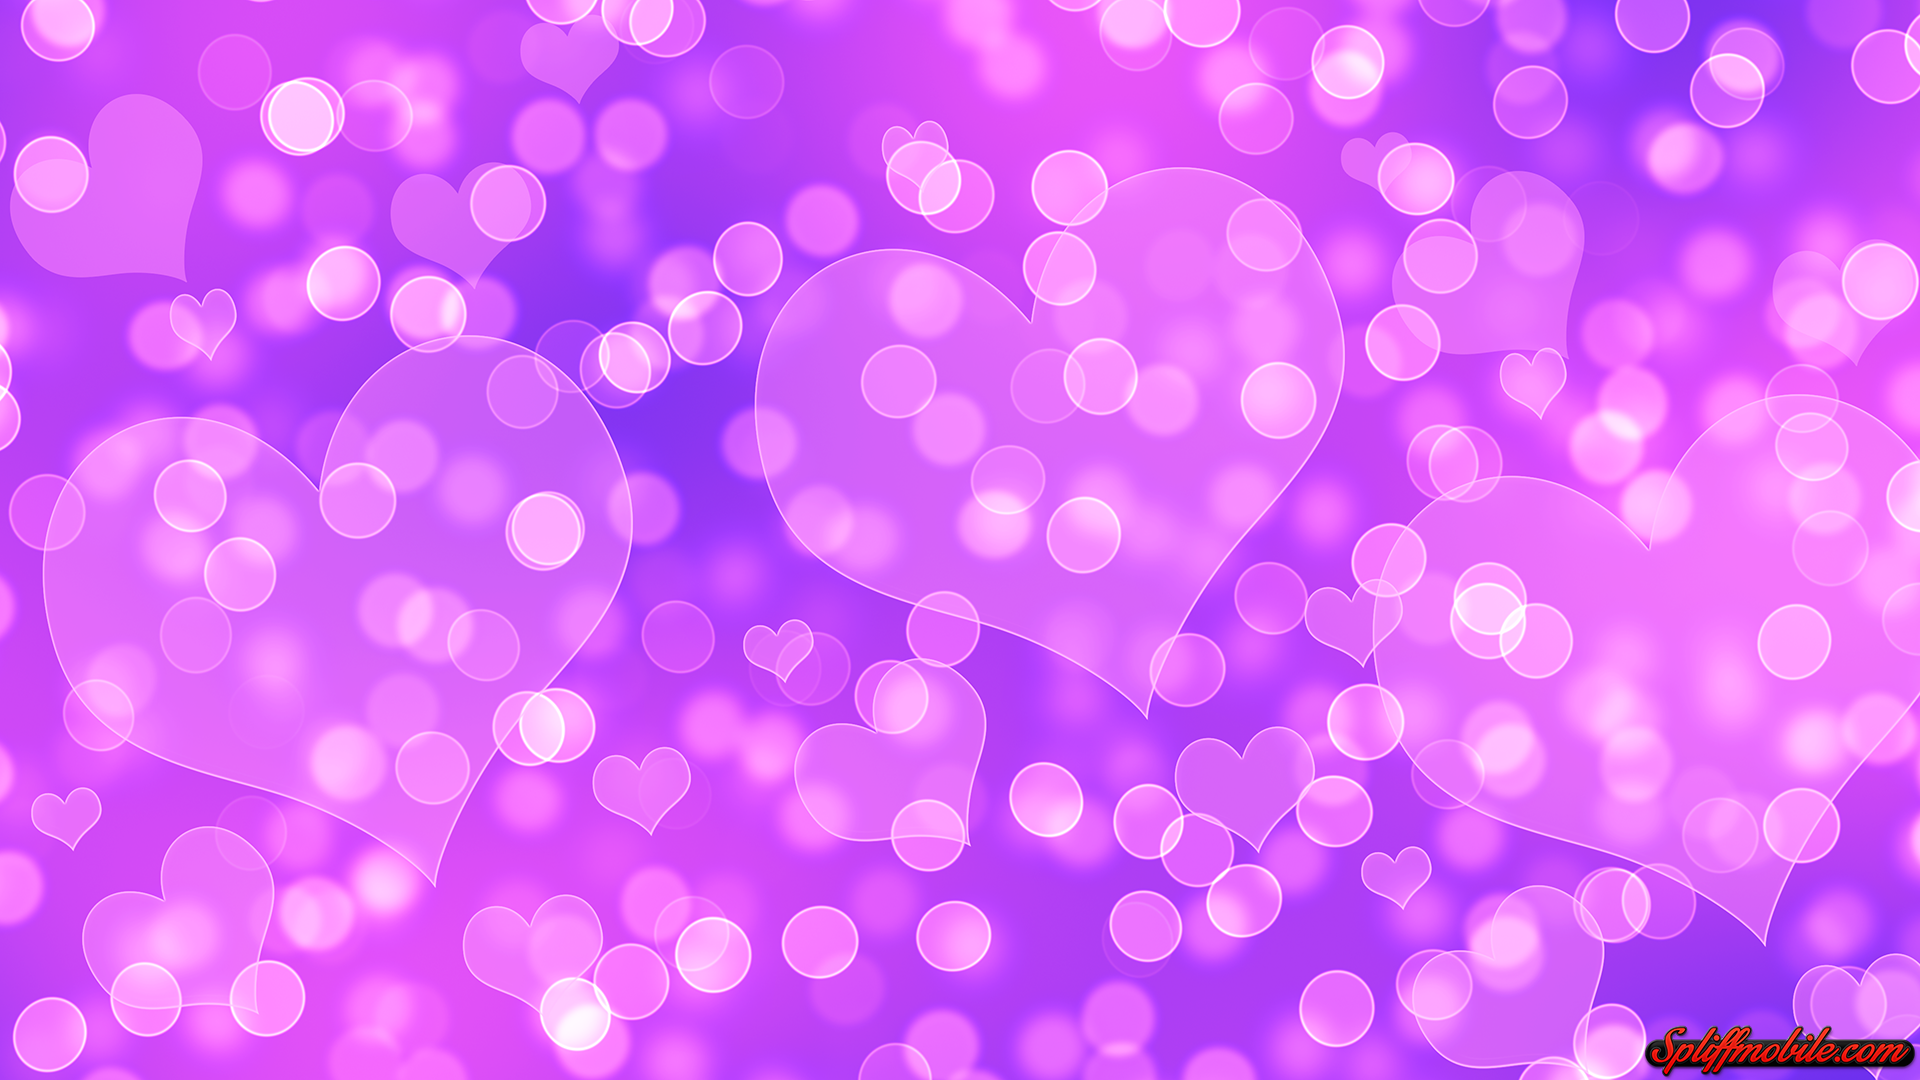 Love Wallpapers In Ultra Hd : HD Love Bokeh Wallpaper